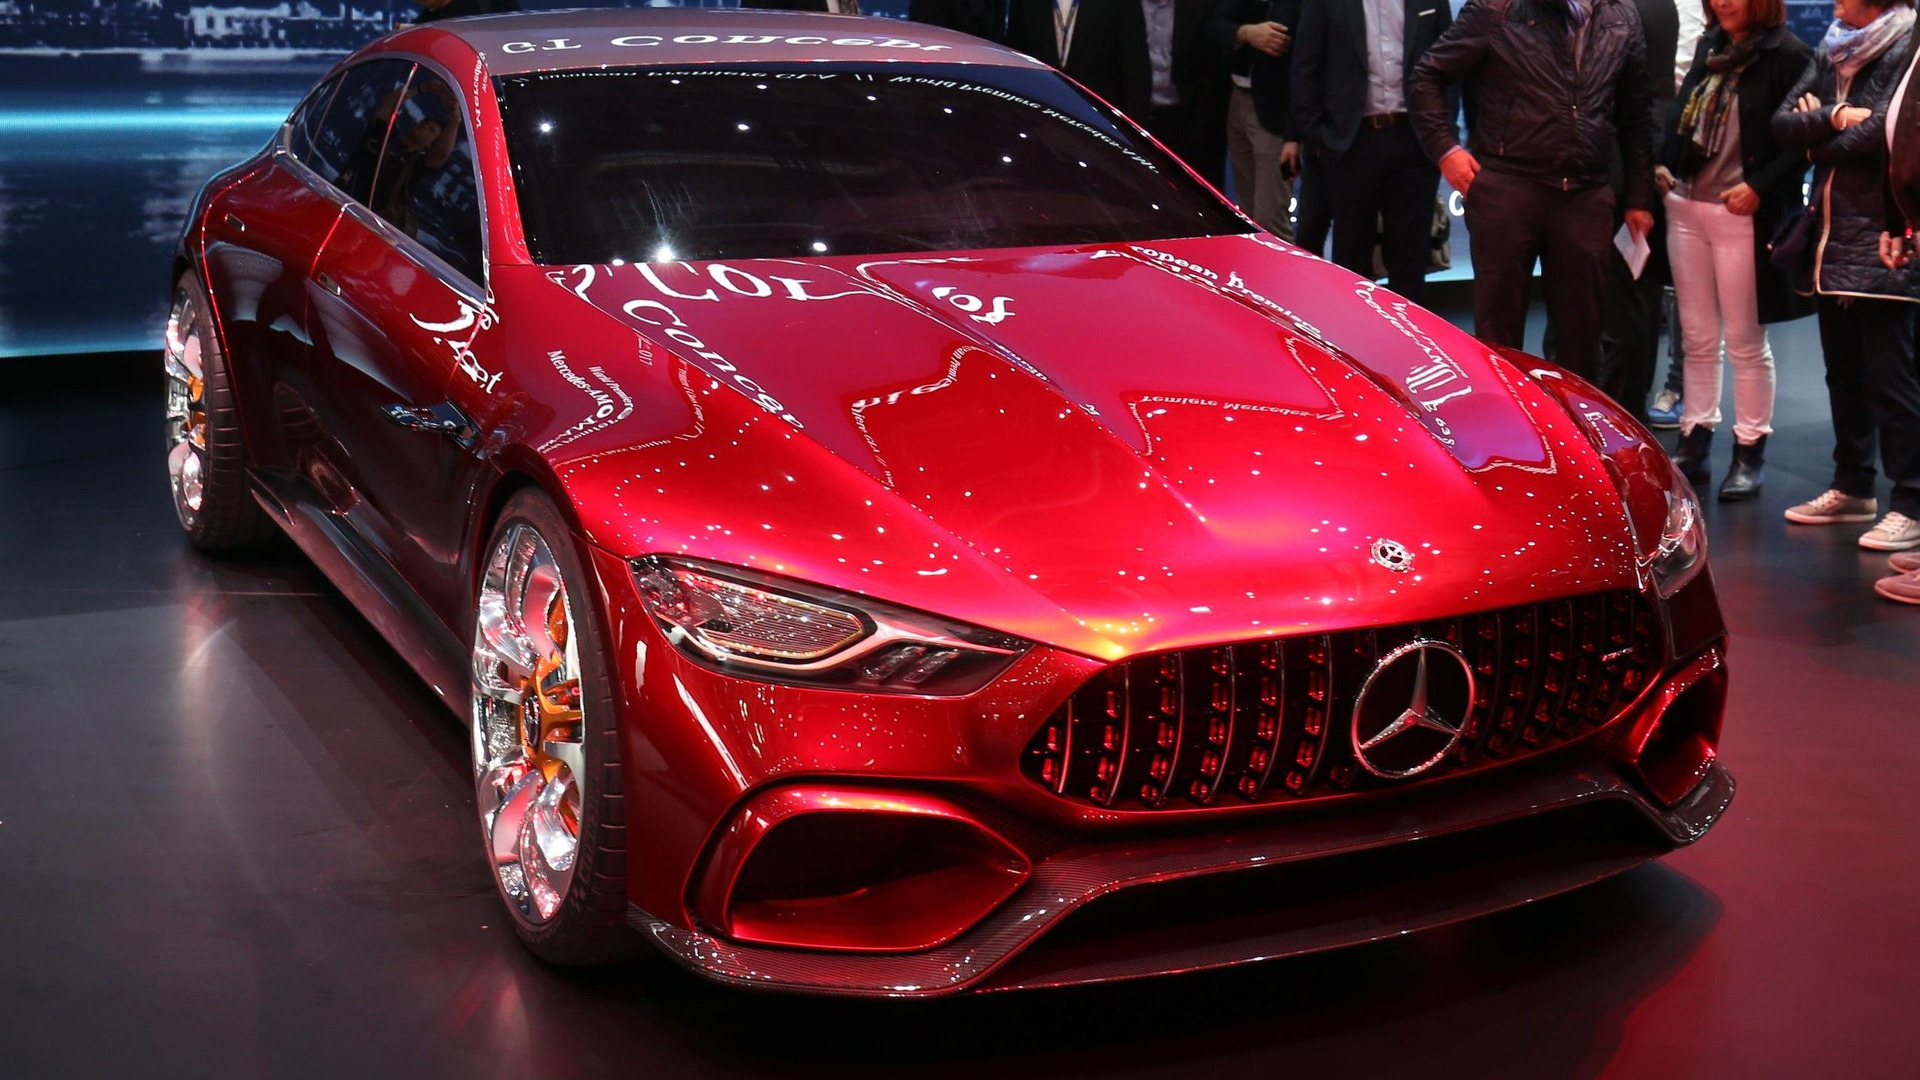 Amg Gt Concept >> Mercedes Amg Gt Concept Is The Hybrid Sports Car For The